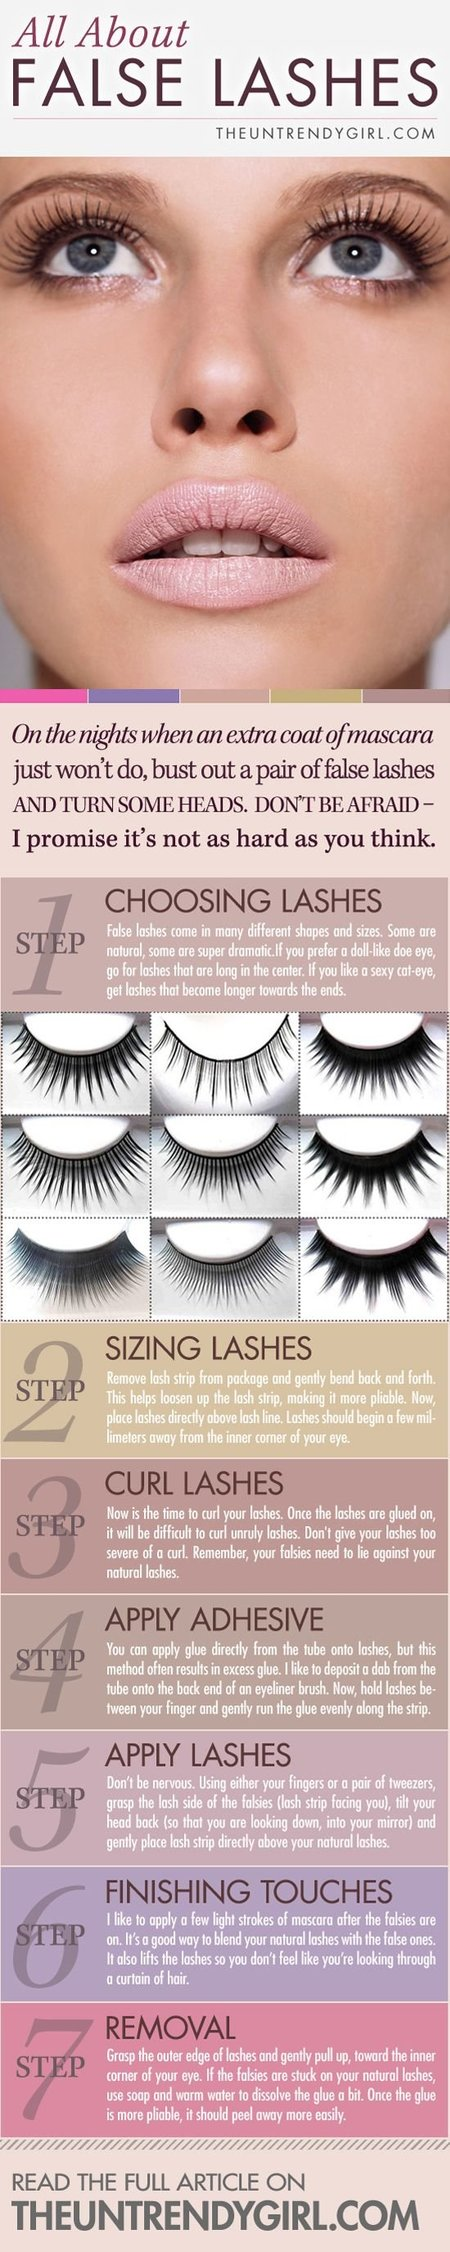 Applying false lashes - Pictorial